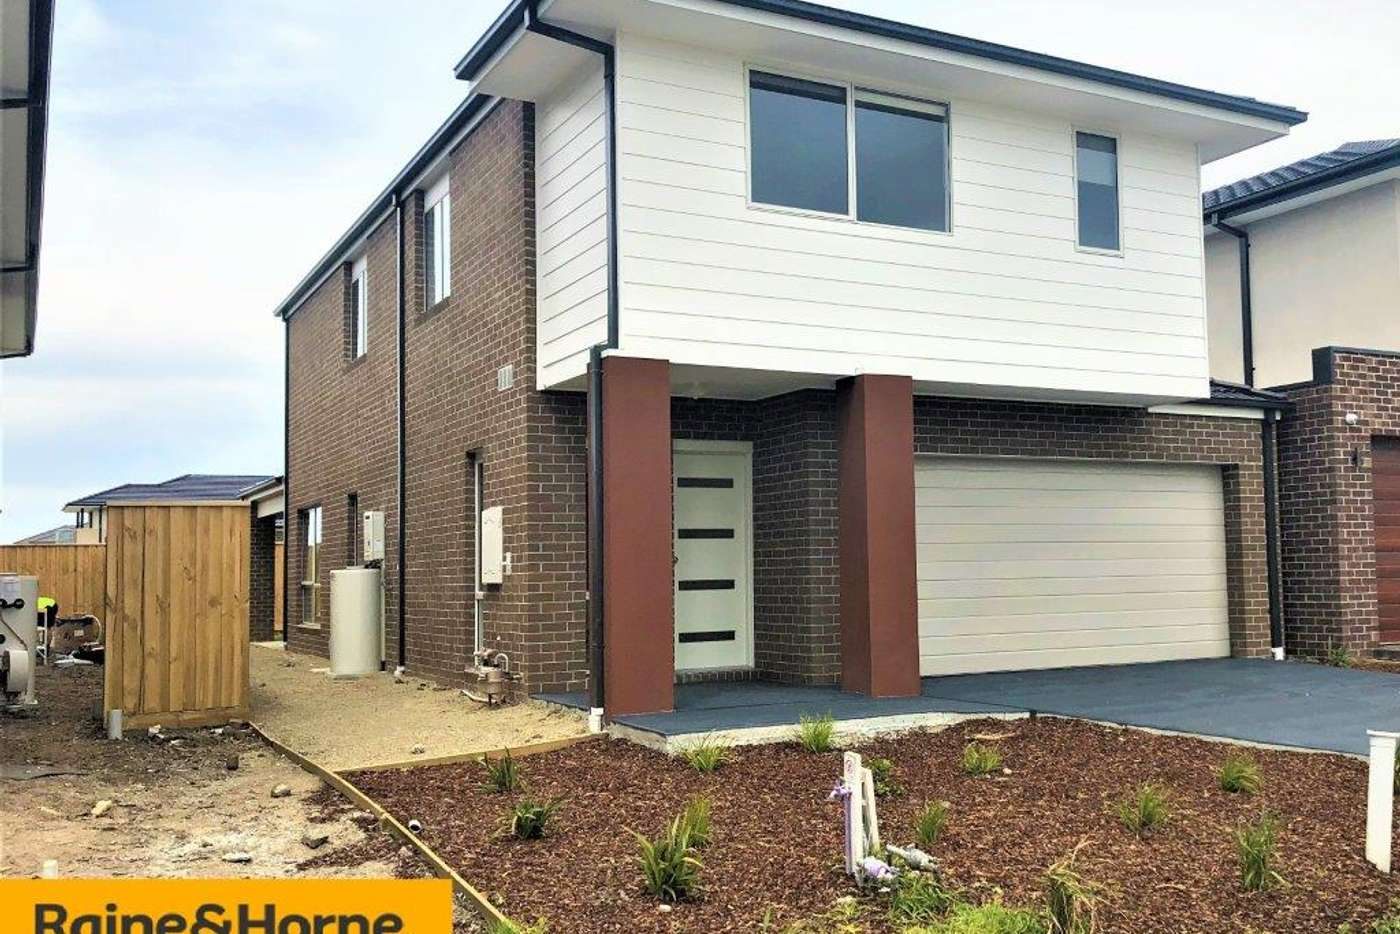 Main view of Homely house listing, 79 Chi Avenue, Keysborough VIC 3173